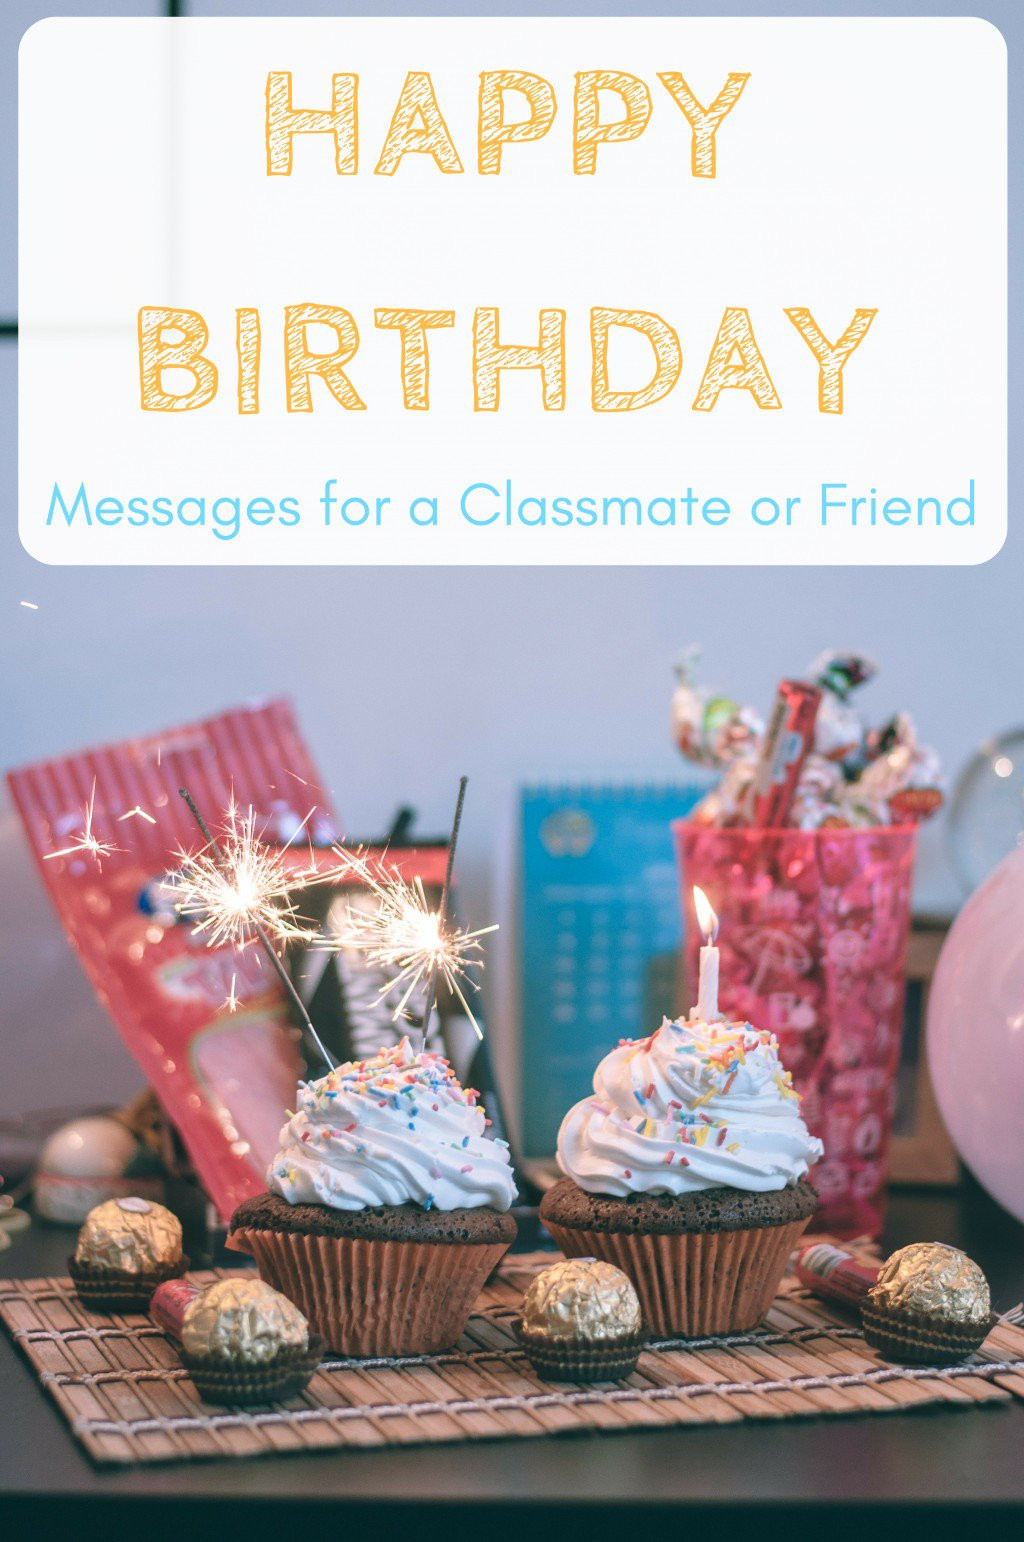 Best ideas about Birthday Wishes Friend . Save or Pin Happy Birthday Wishes for a Classmate School Friend or Now.